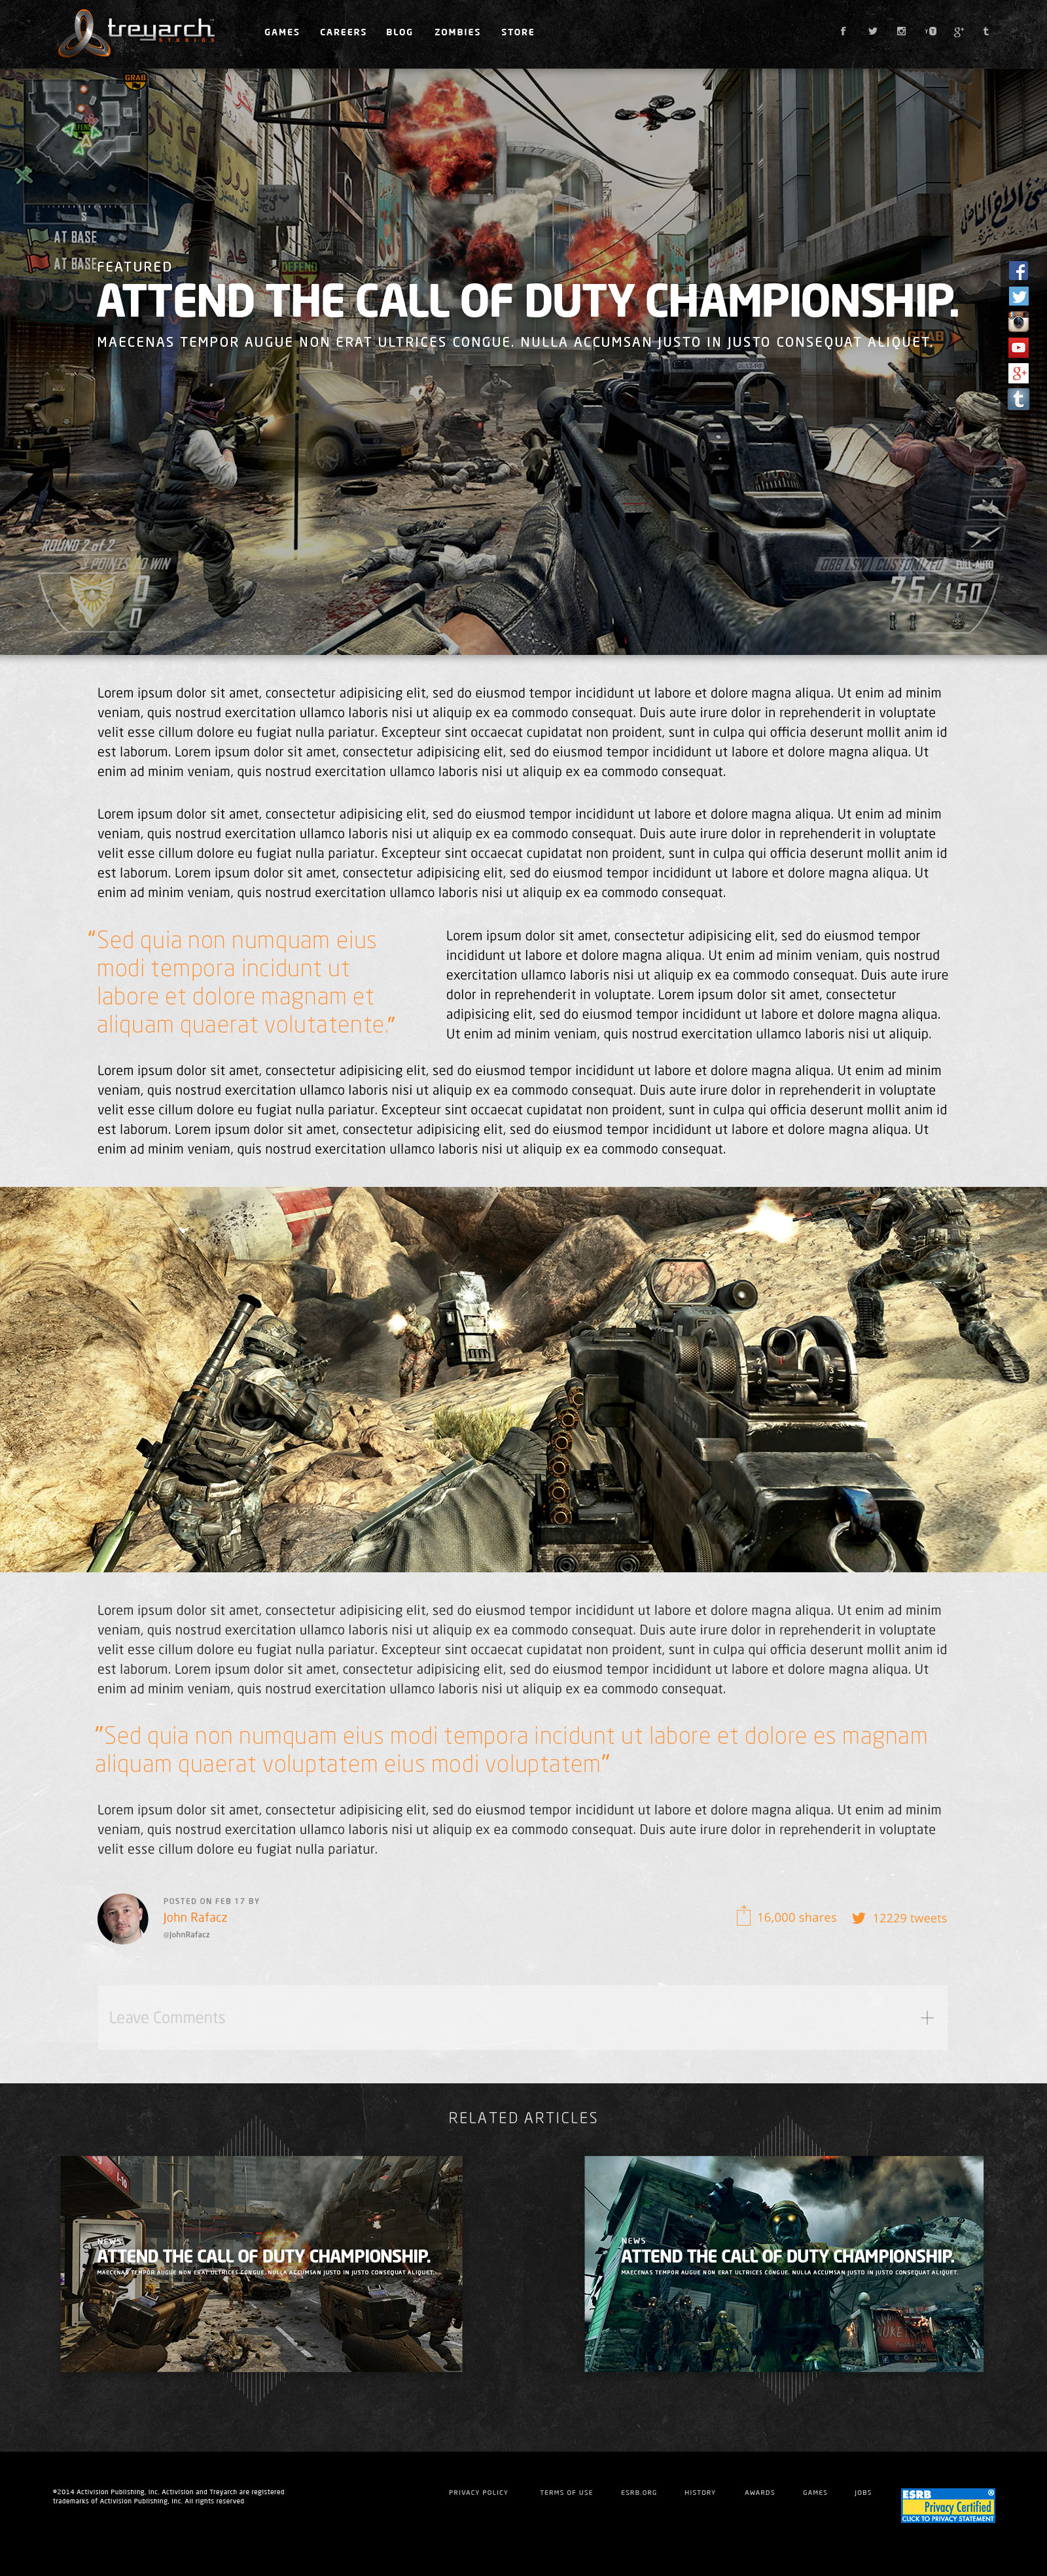 005_TreyArch_Article_Desktop